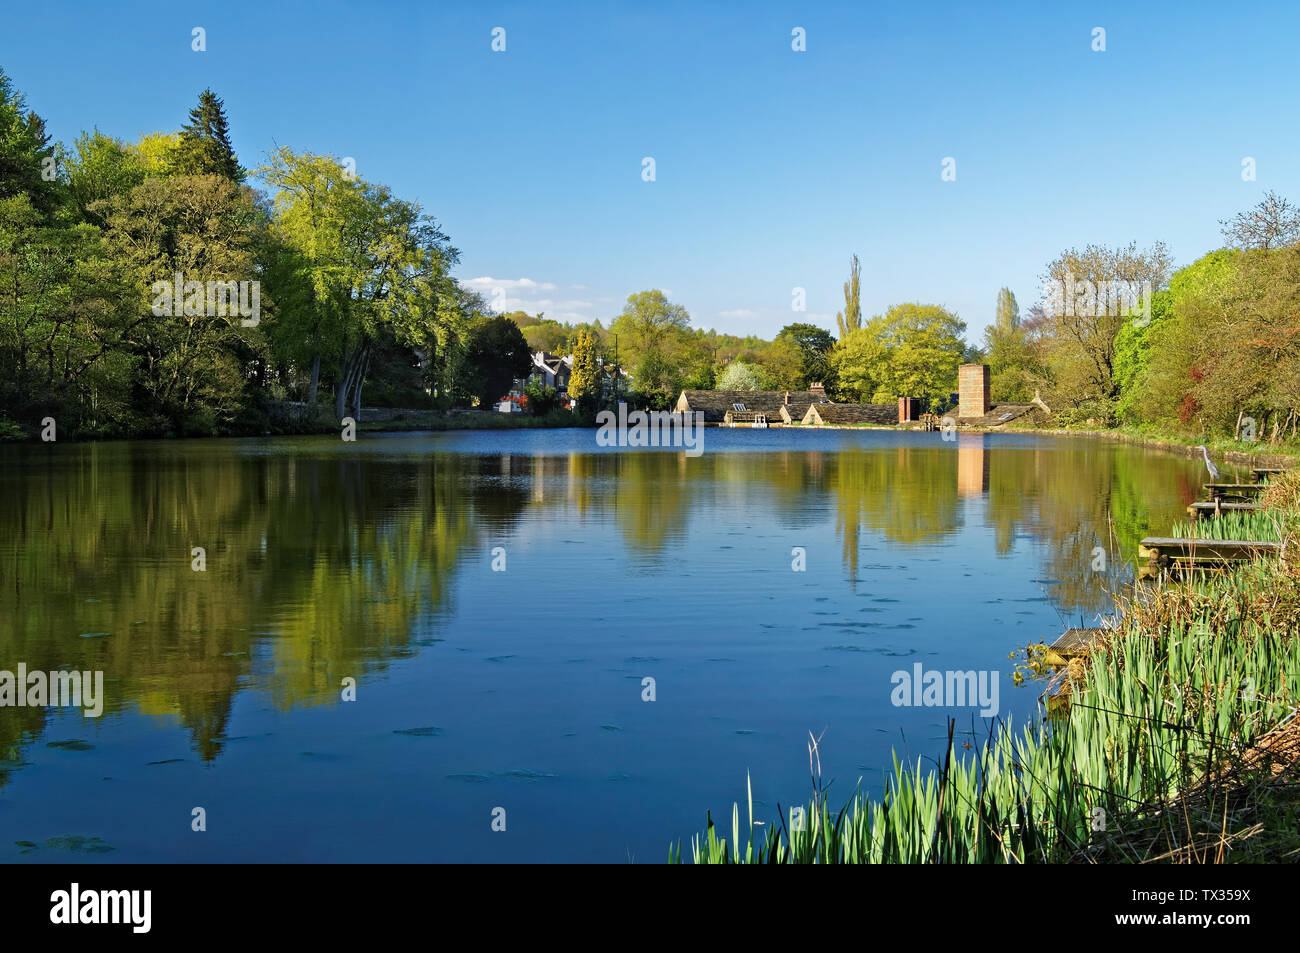 UK,South Yorkshire,Sheffield,Abbeydale Industrial Hamlet & Lake - Stock Image